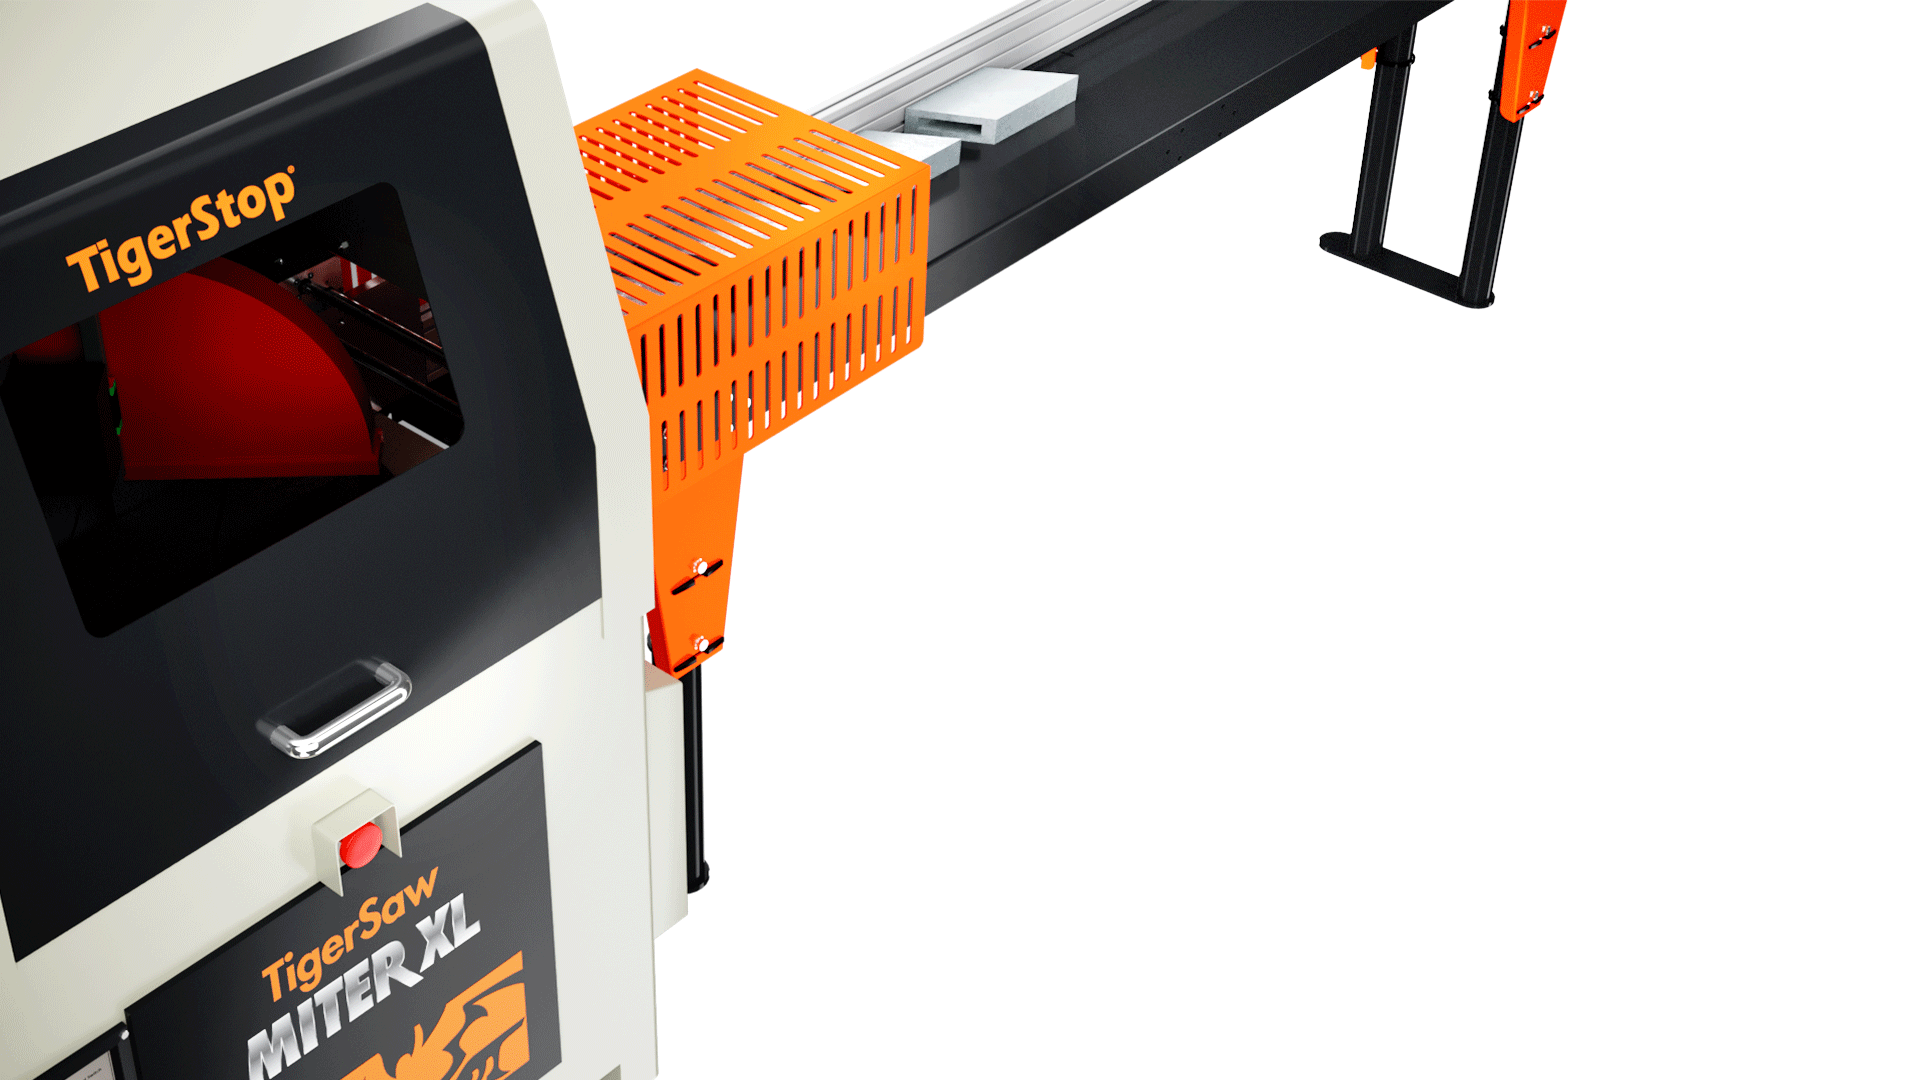 TigerSaw MiterXL™ - Automatic Saw System